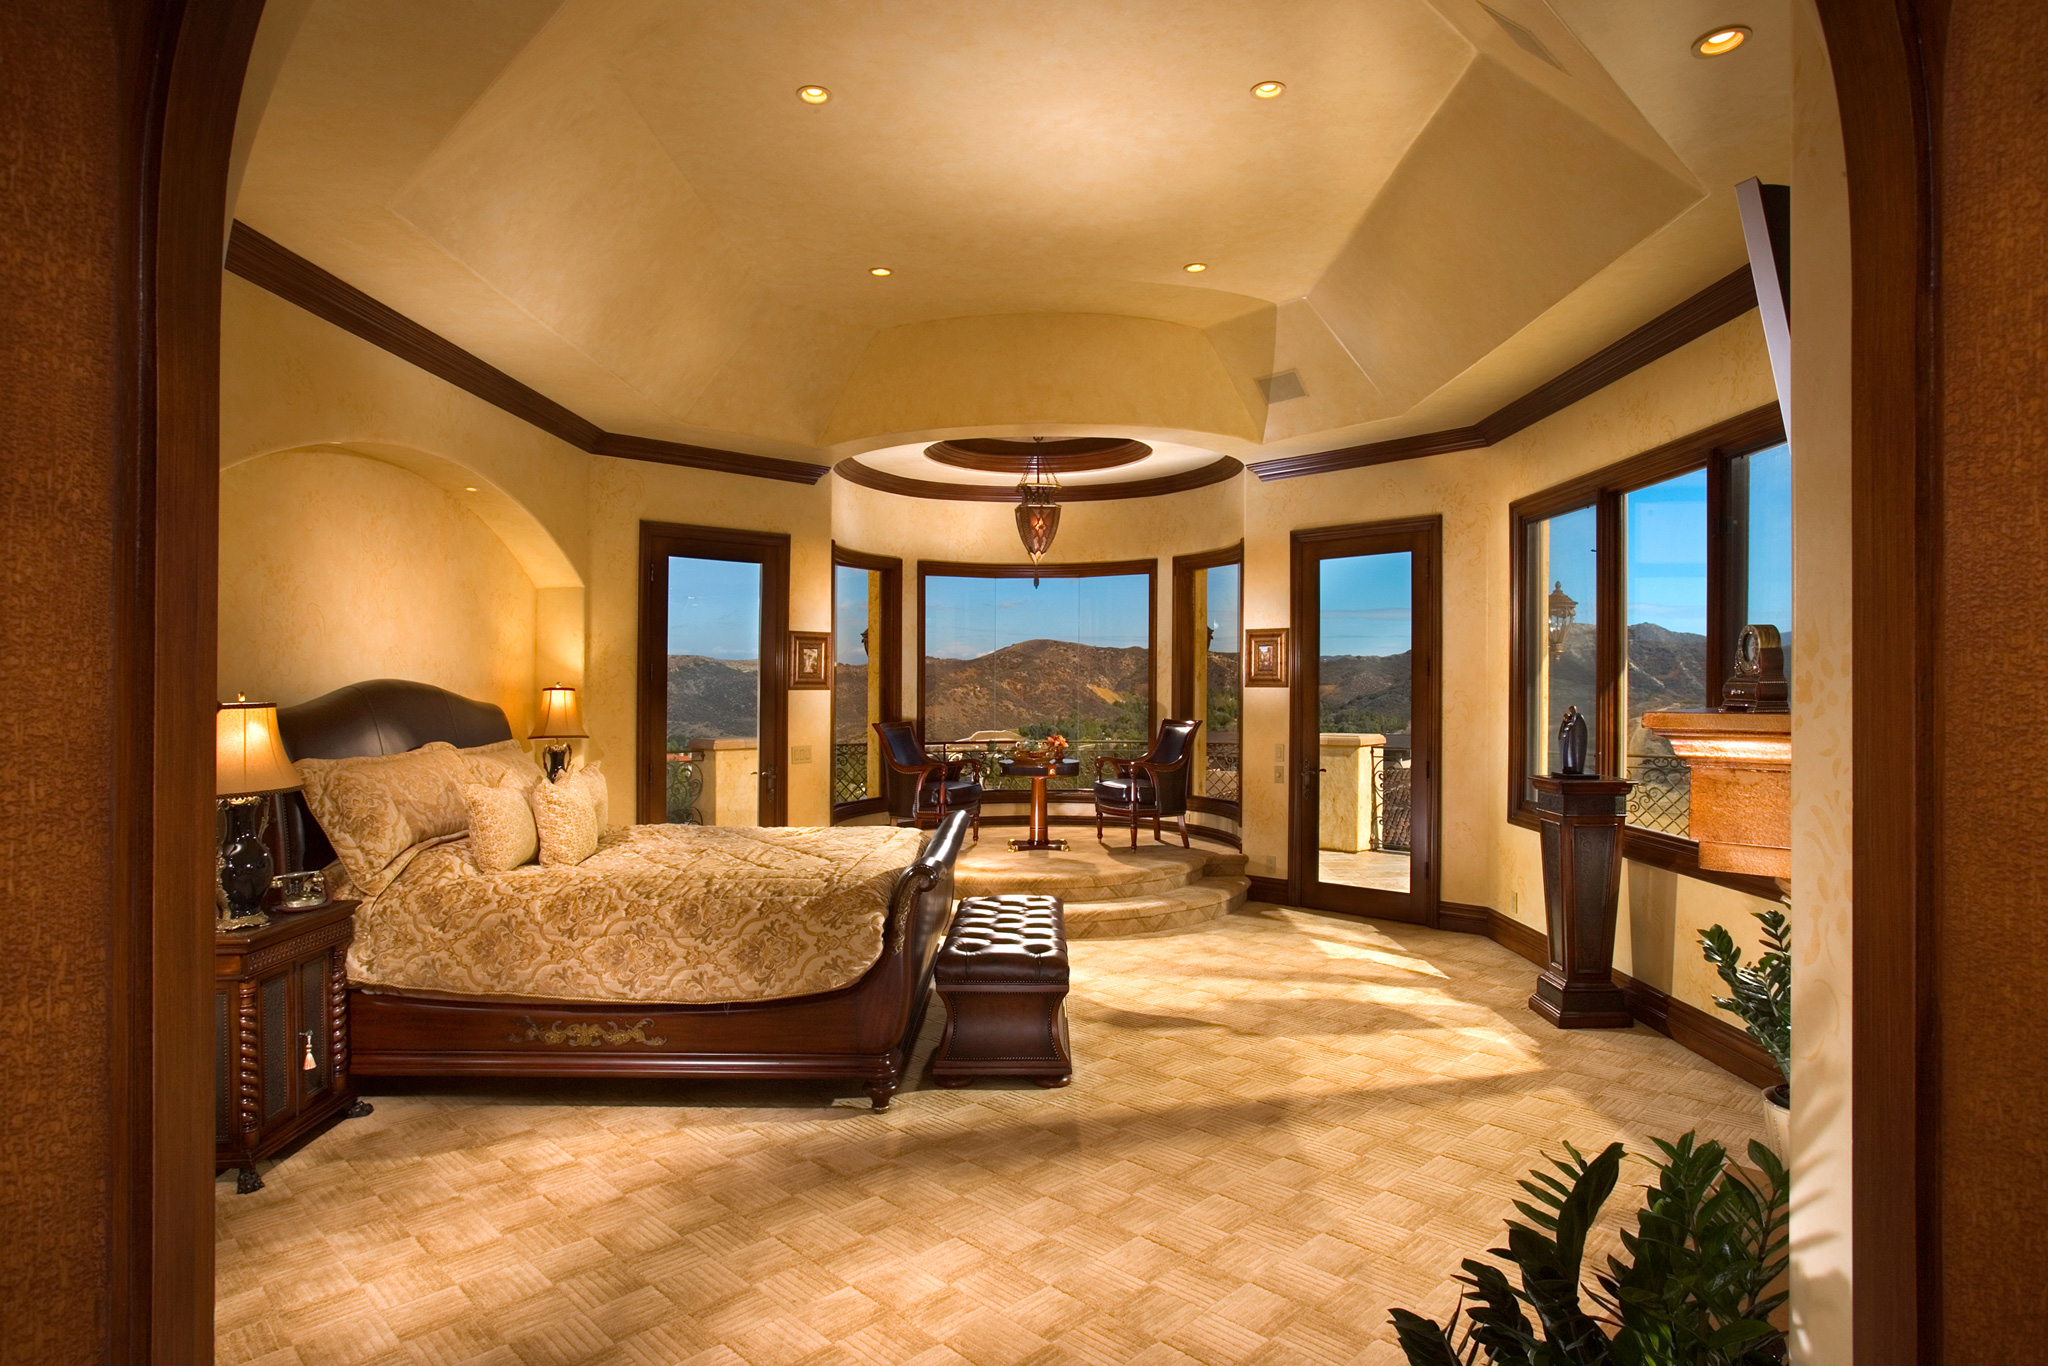 Master bedroom the interior designs for Cheap and best interior designs